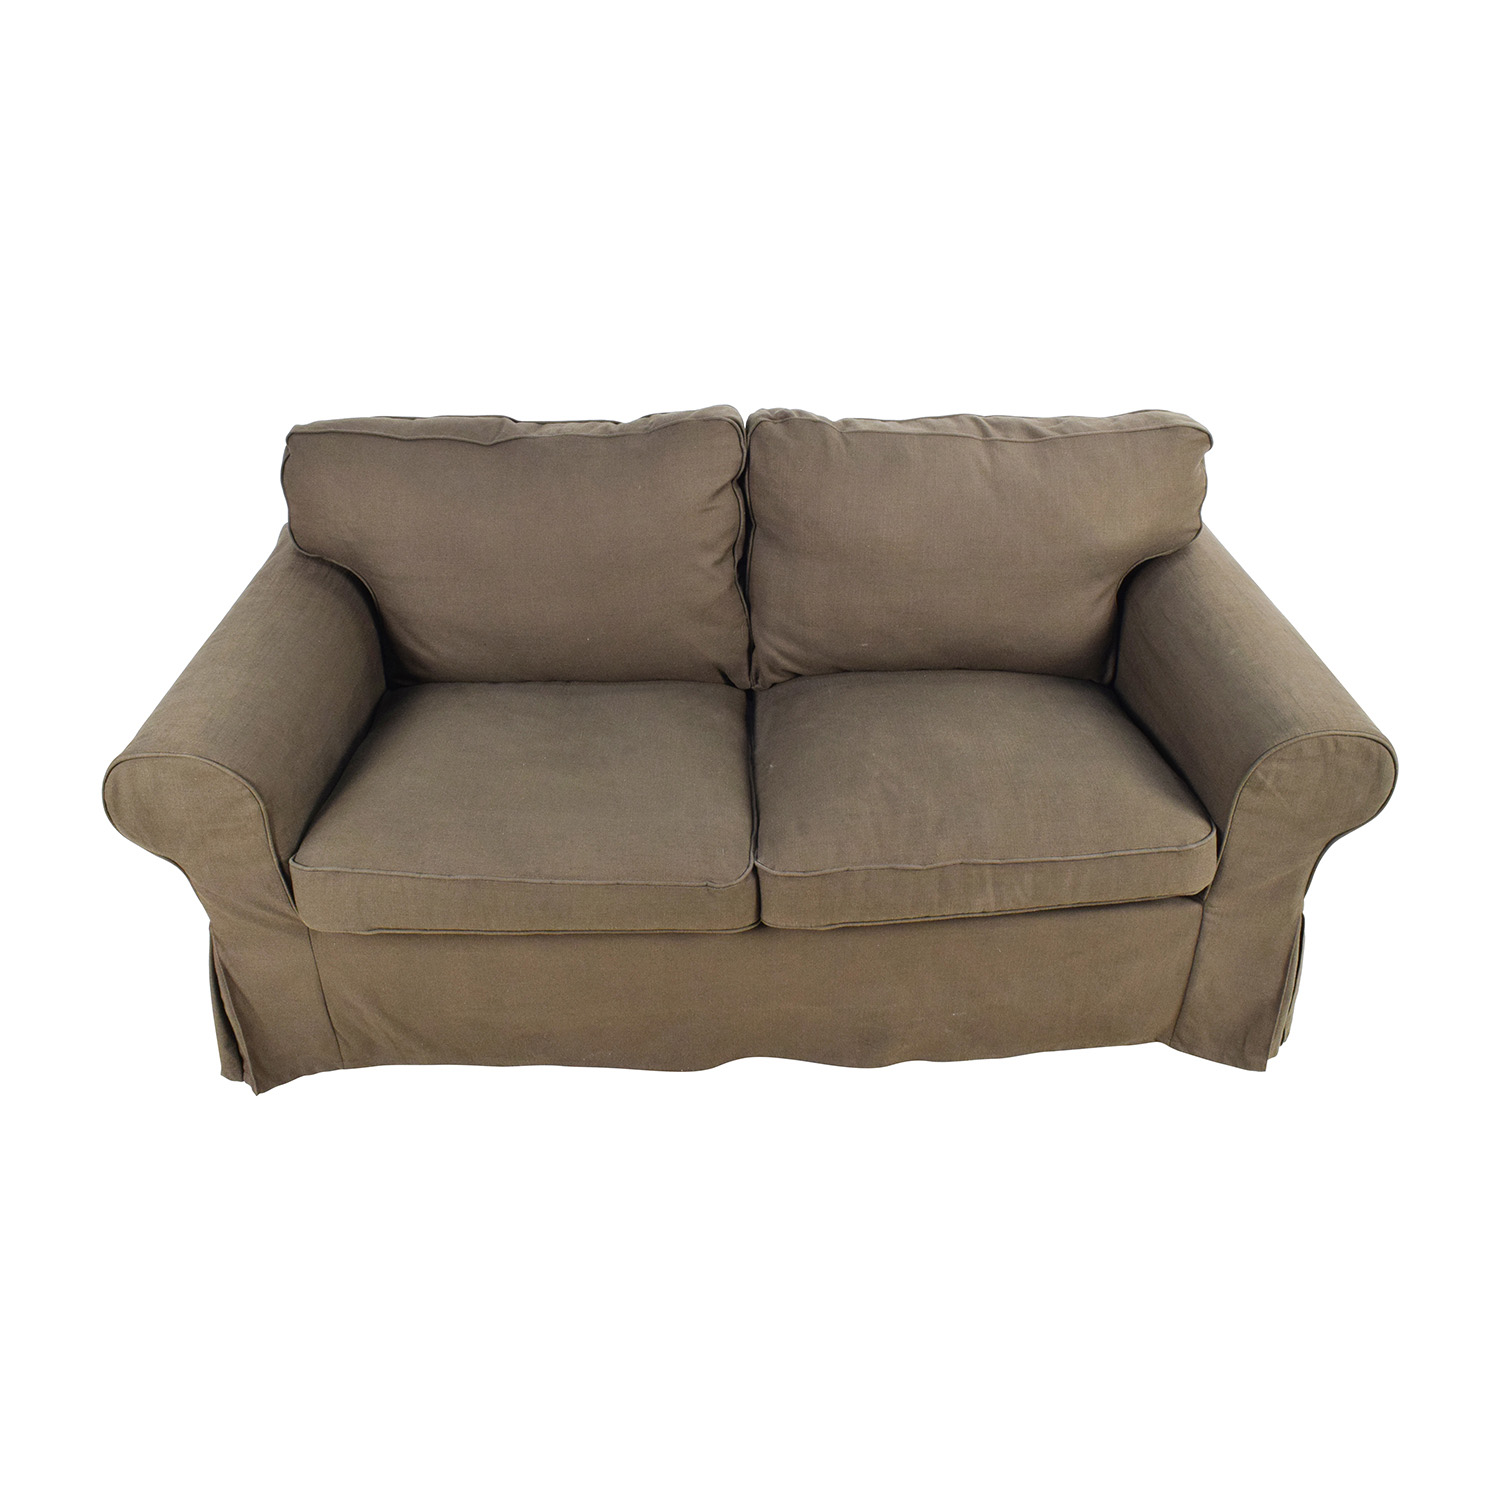 Brown Skirted Loveseat on sale